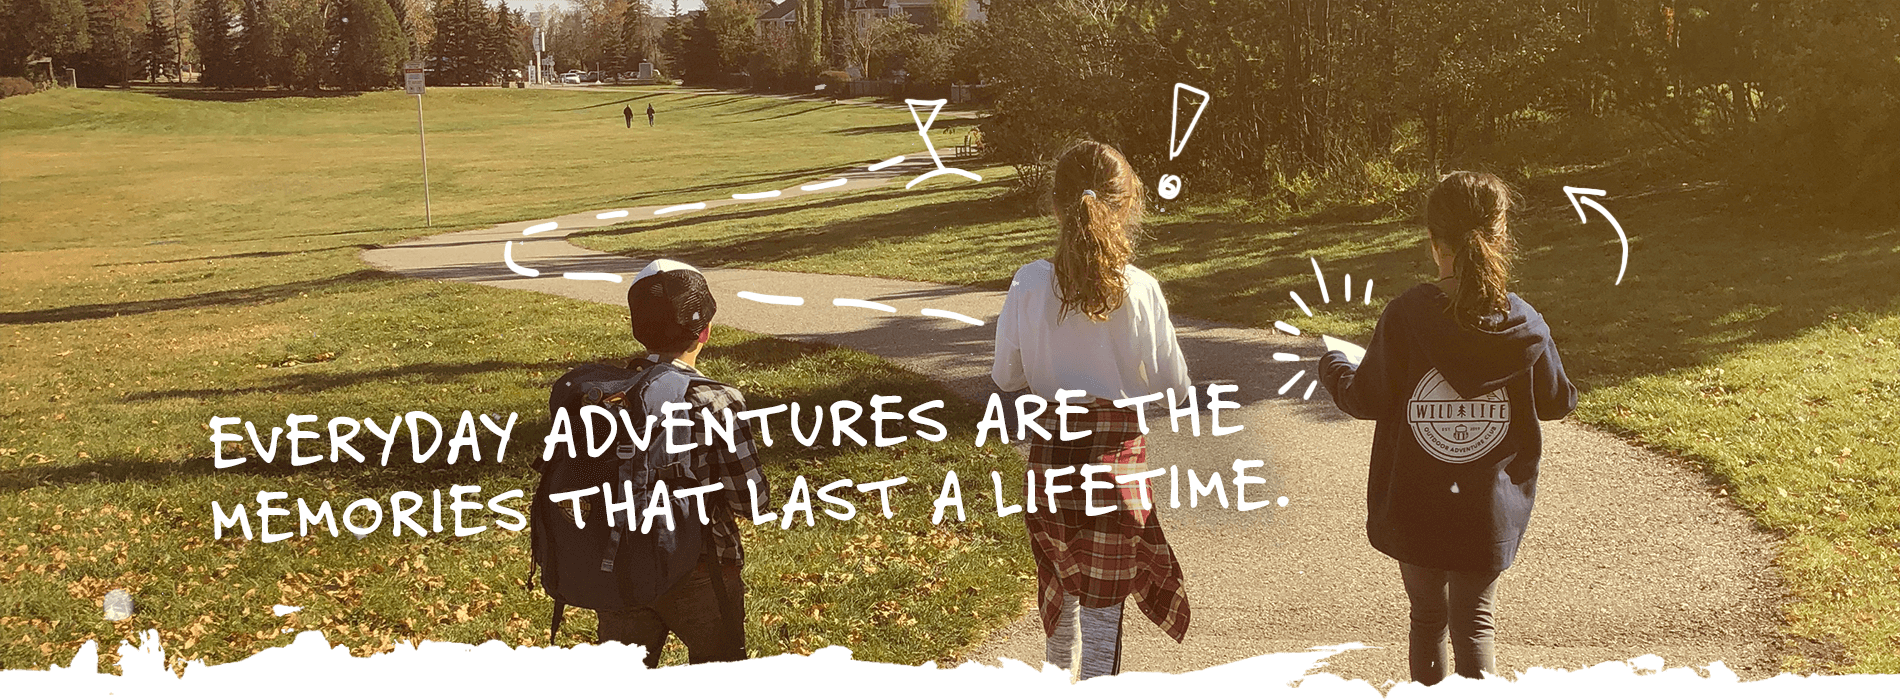 Everyday adventures are the memories that last a lifetime.